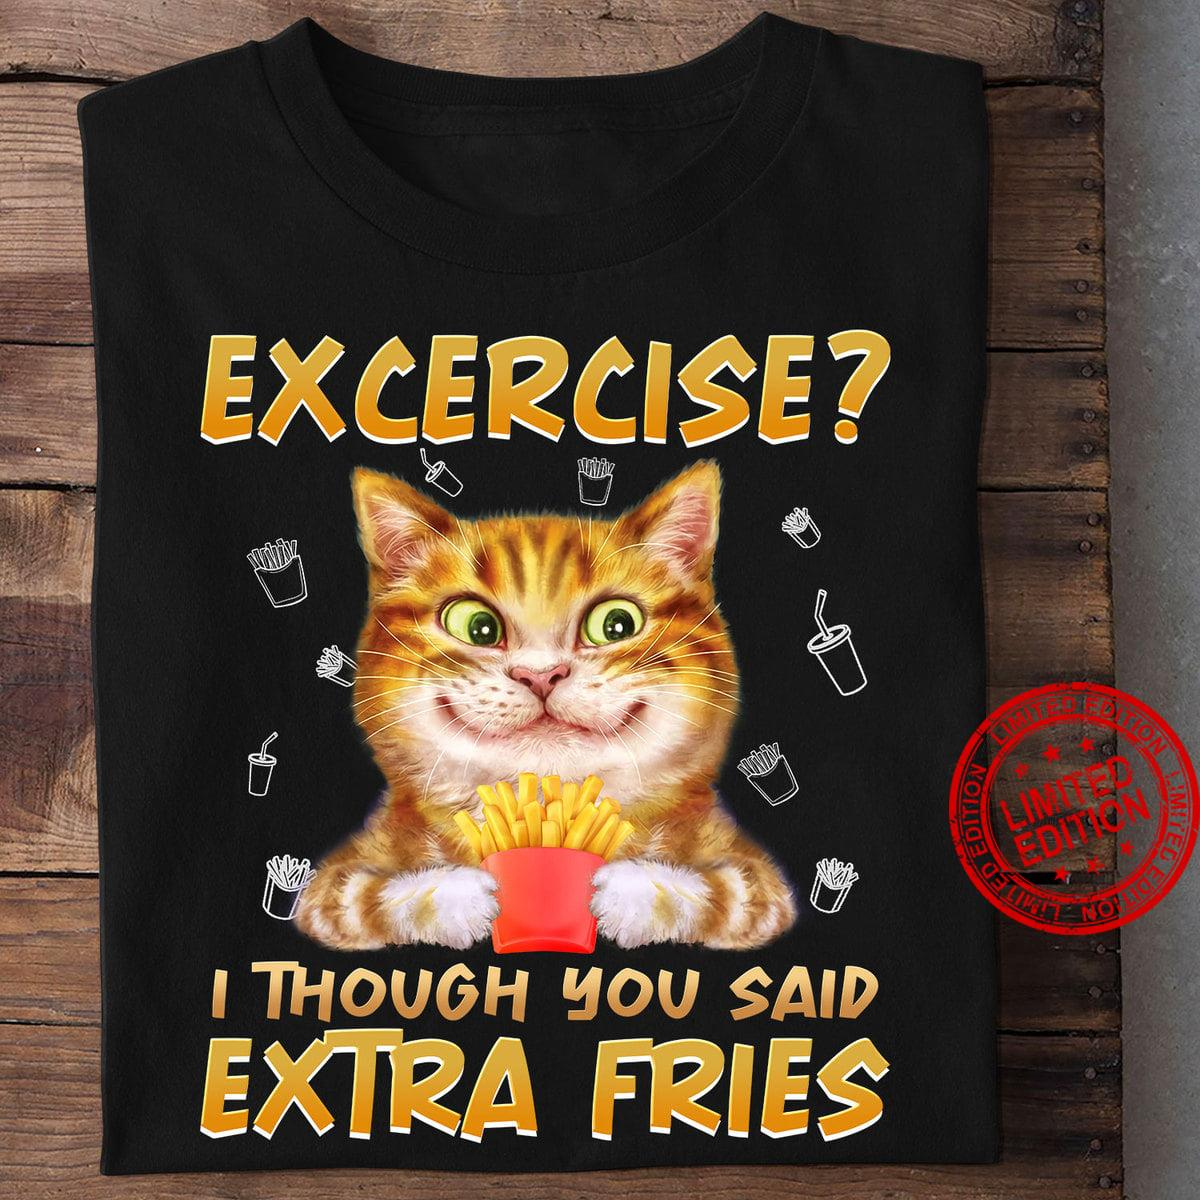 Excercise I Though You Said Extra Fries Shirt